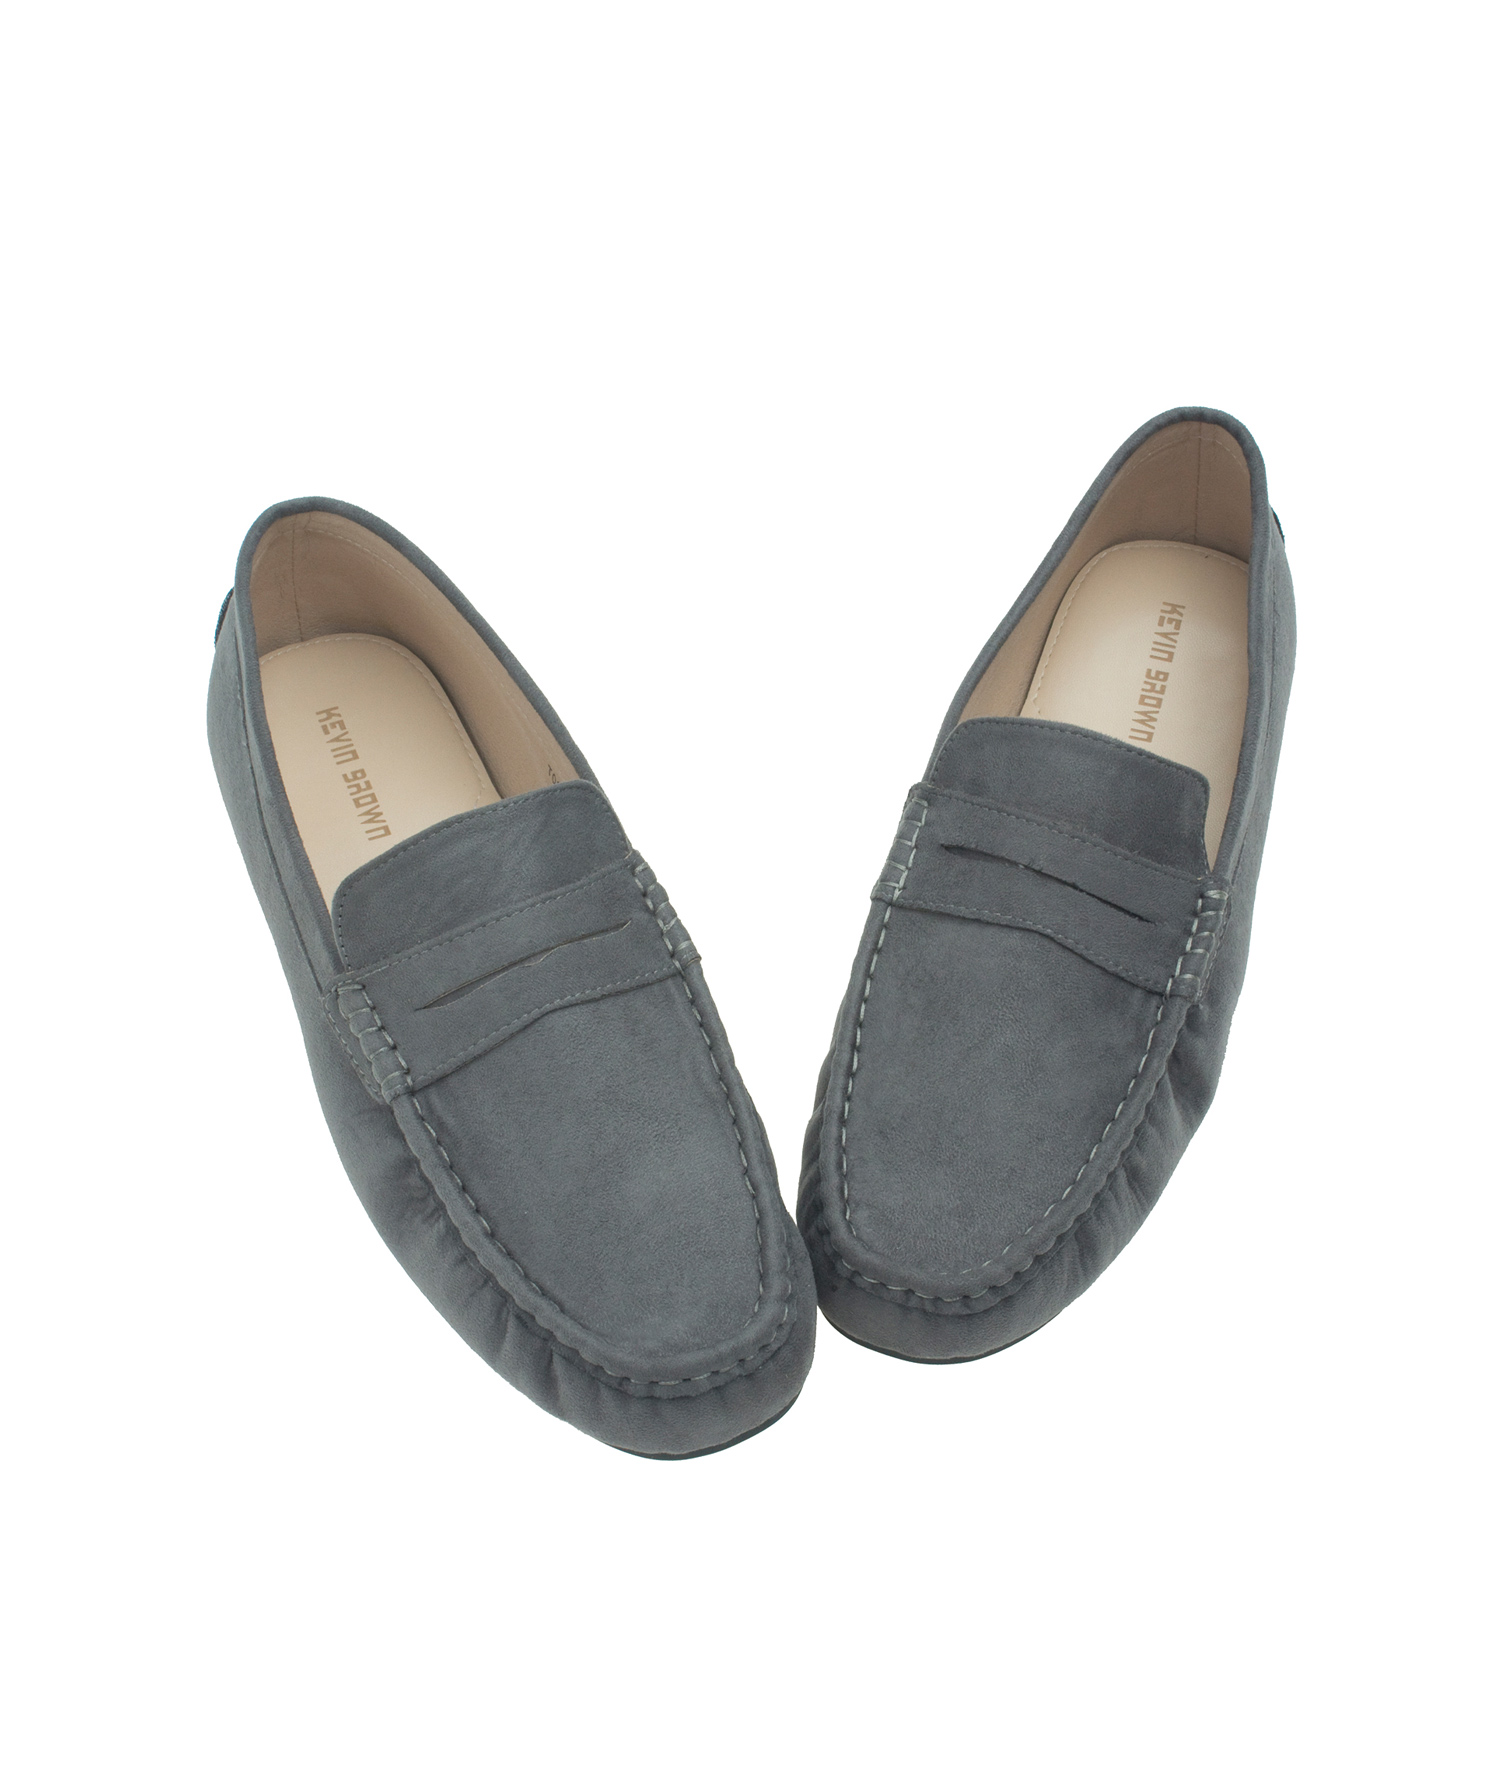 Classic Suede Penny Loafer Driving